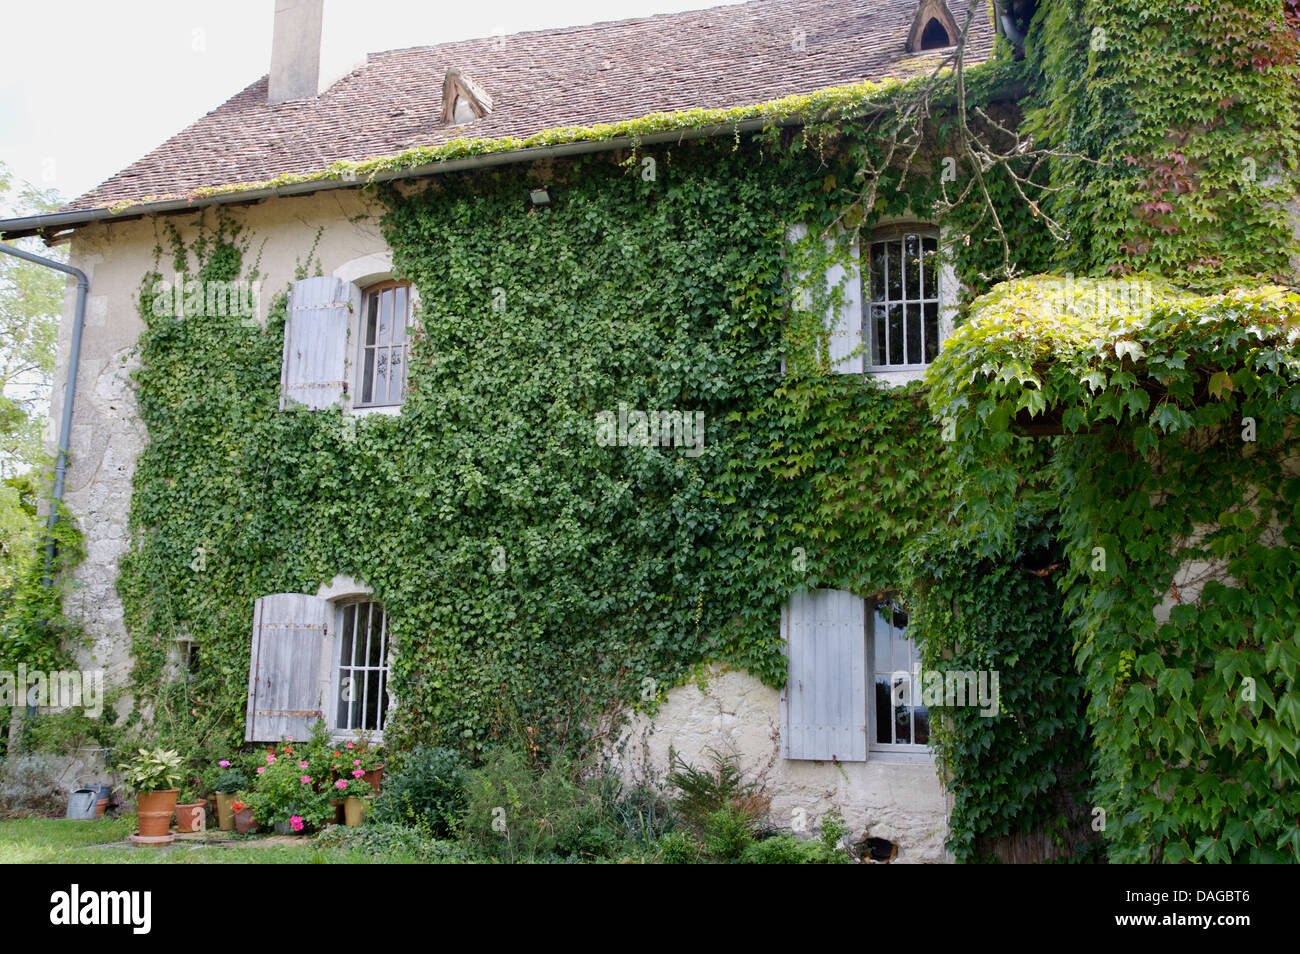 Old french country house with ivy clad walls and windows with pale stock photo royalty free - The shutter clad house ...